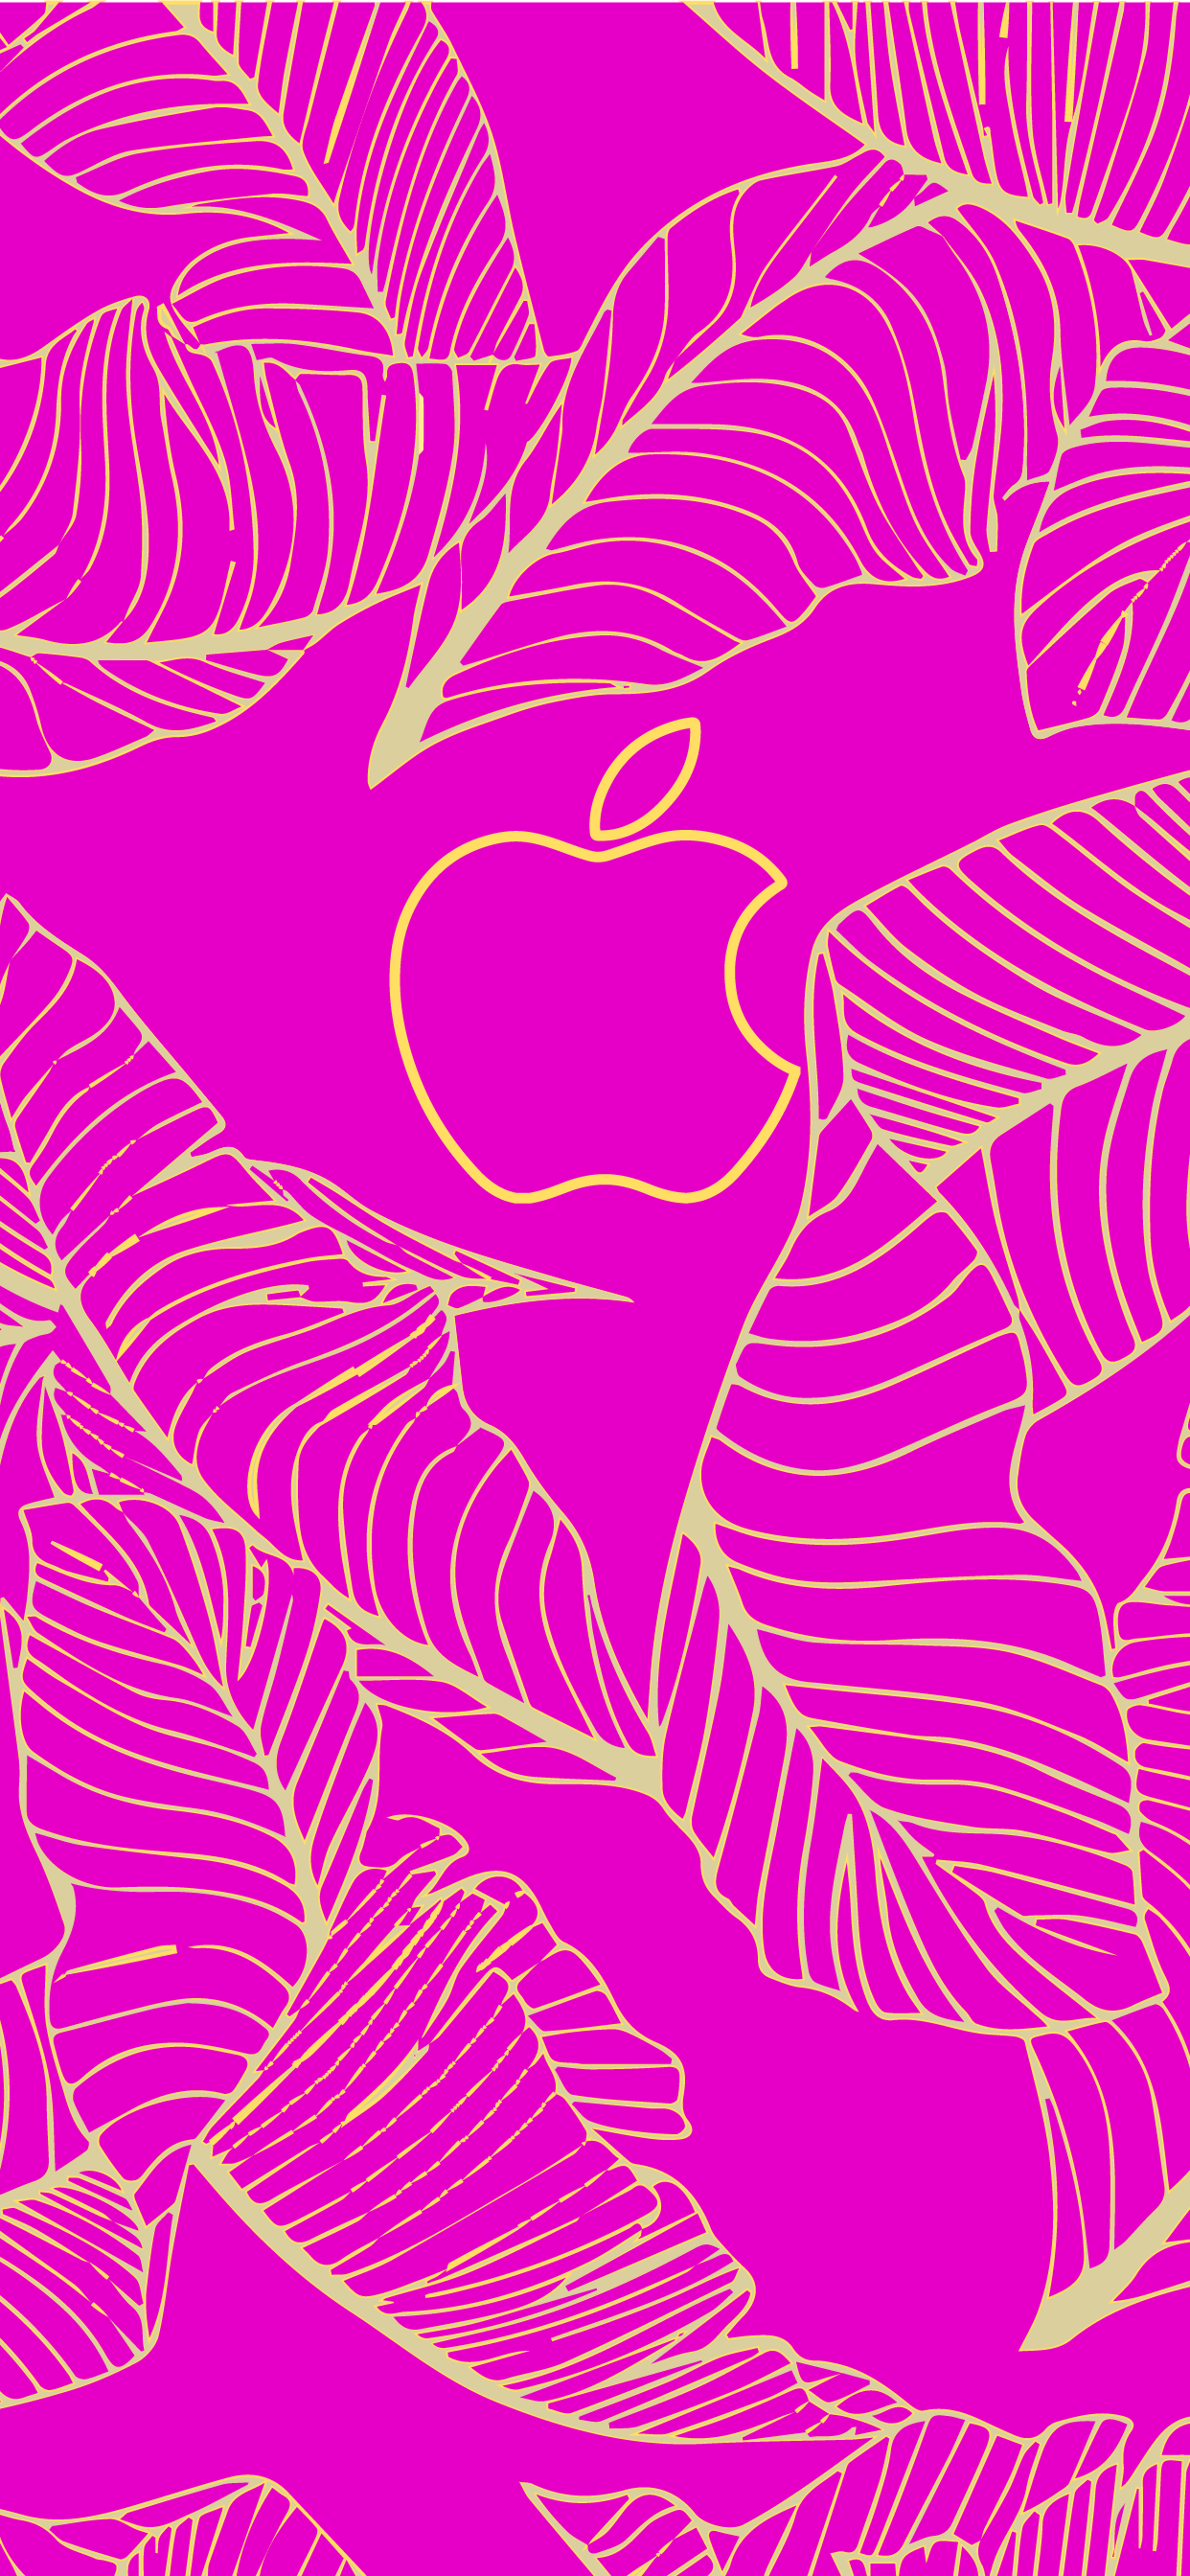 Apple logo aesthetic wallpaper iphone